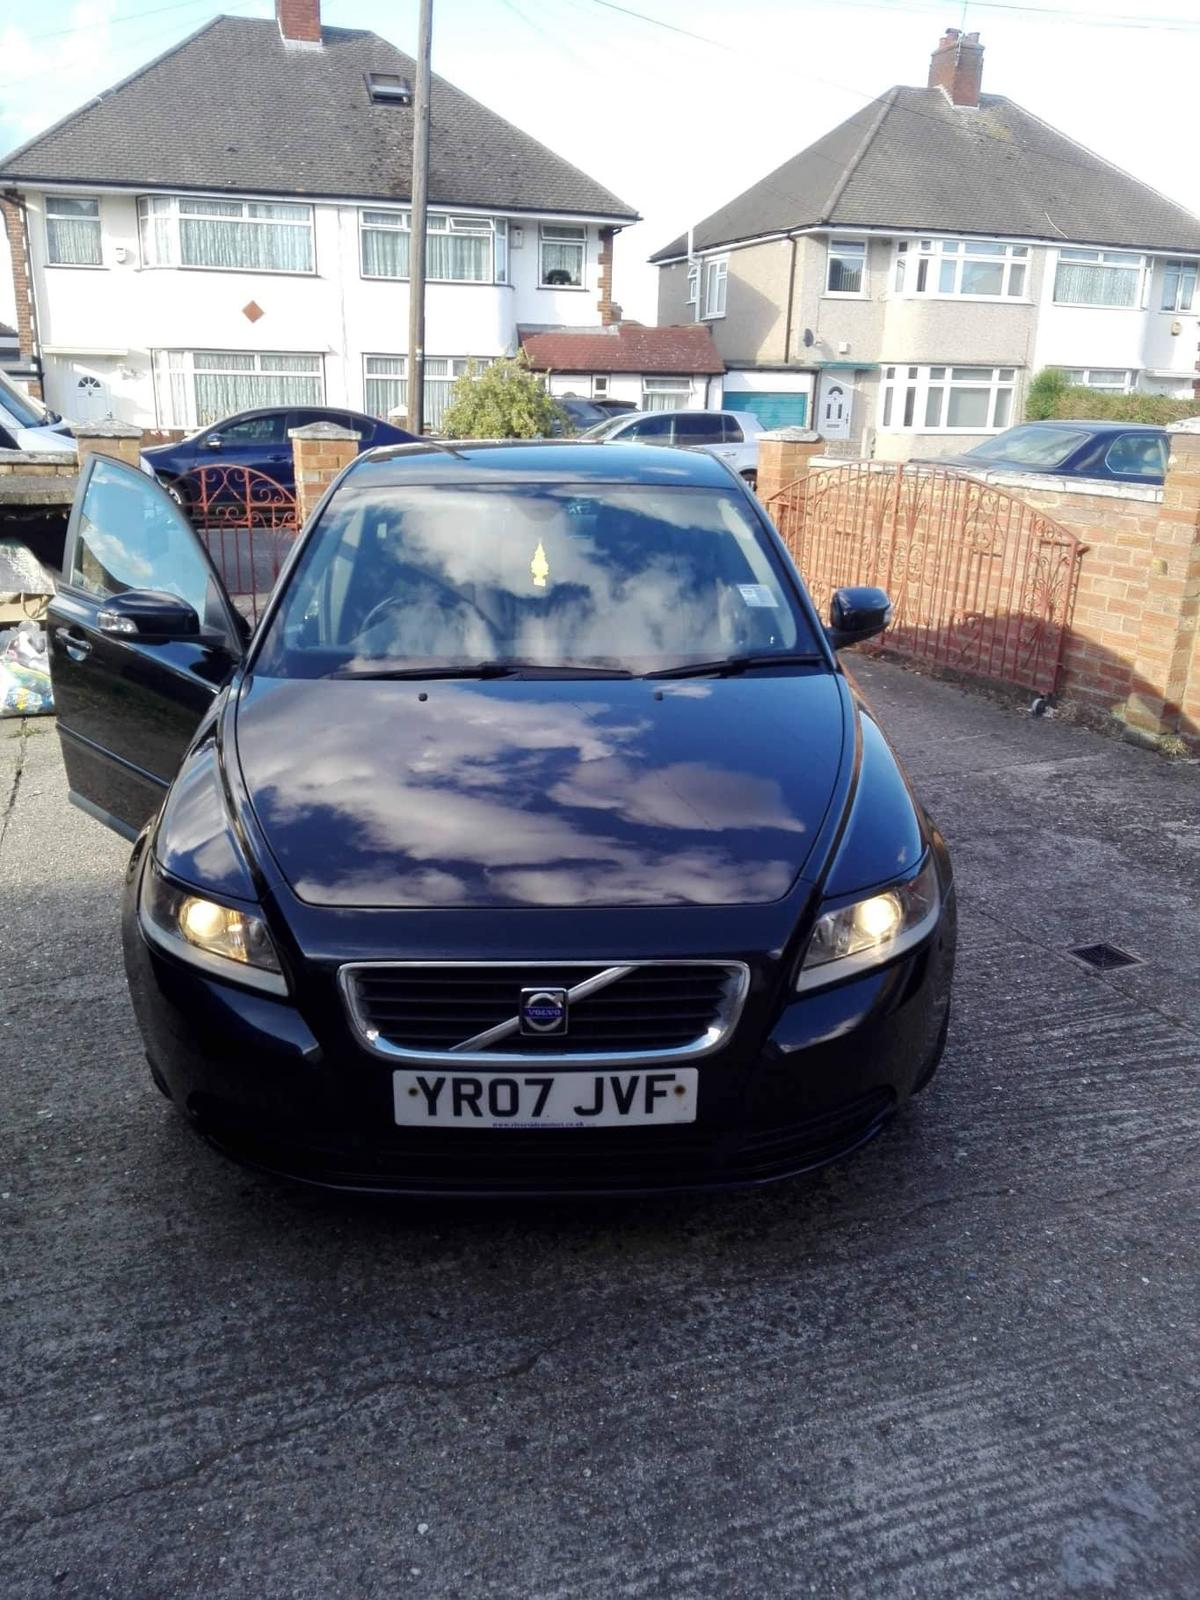 Volvo S40 Call 07460805465 In Ub4 Hillingdon For 1 350 00 For Sale